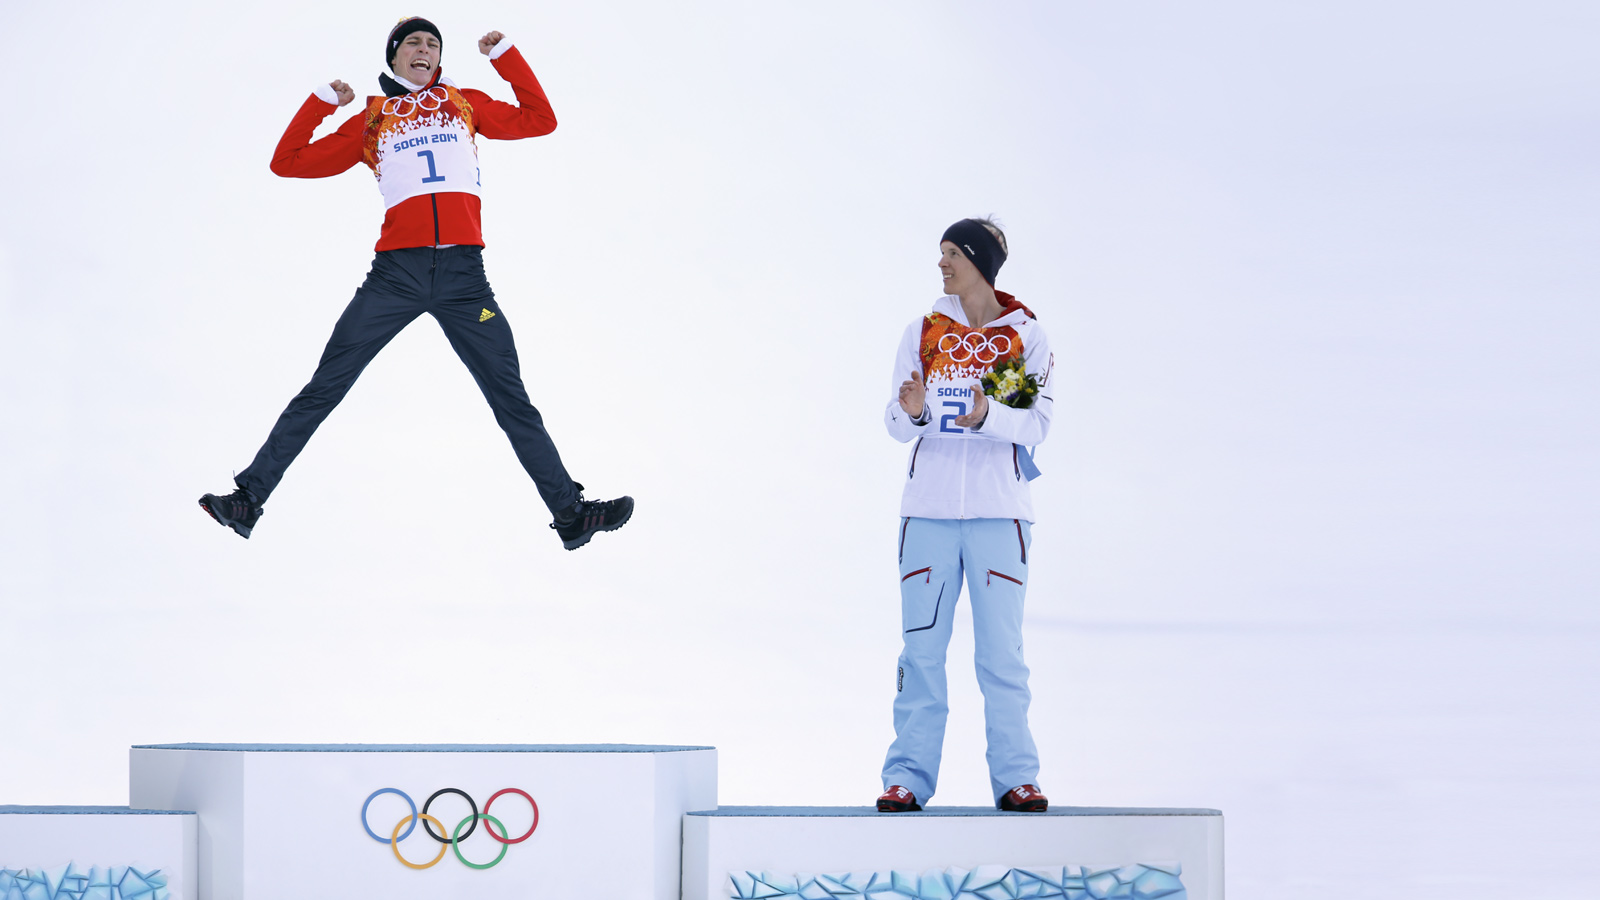 Nordic combined athlete Eric Frenzel jump on the podium next to Lukas KLAPFER during 2014 Sotchi Winter Olympics